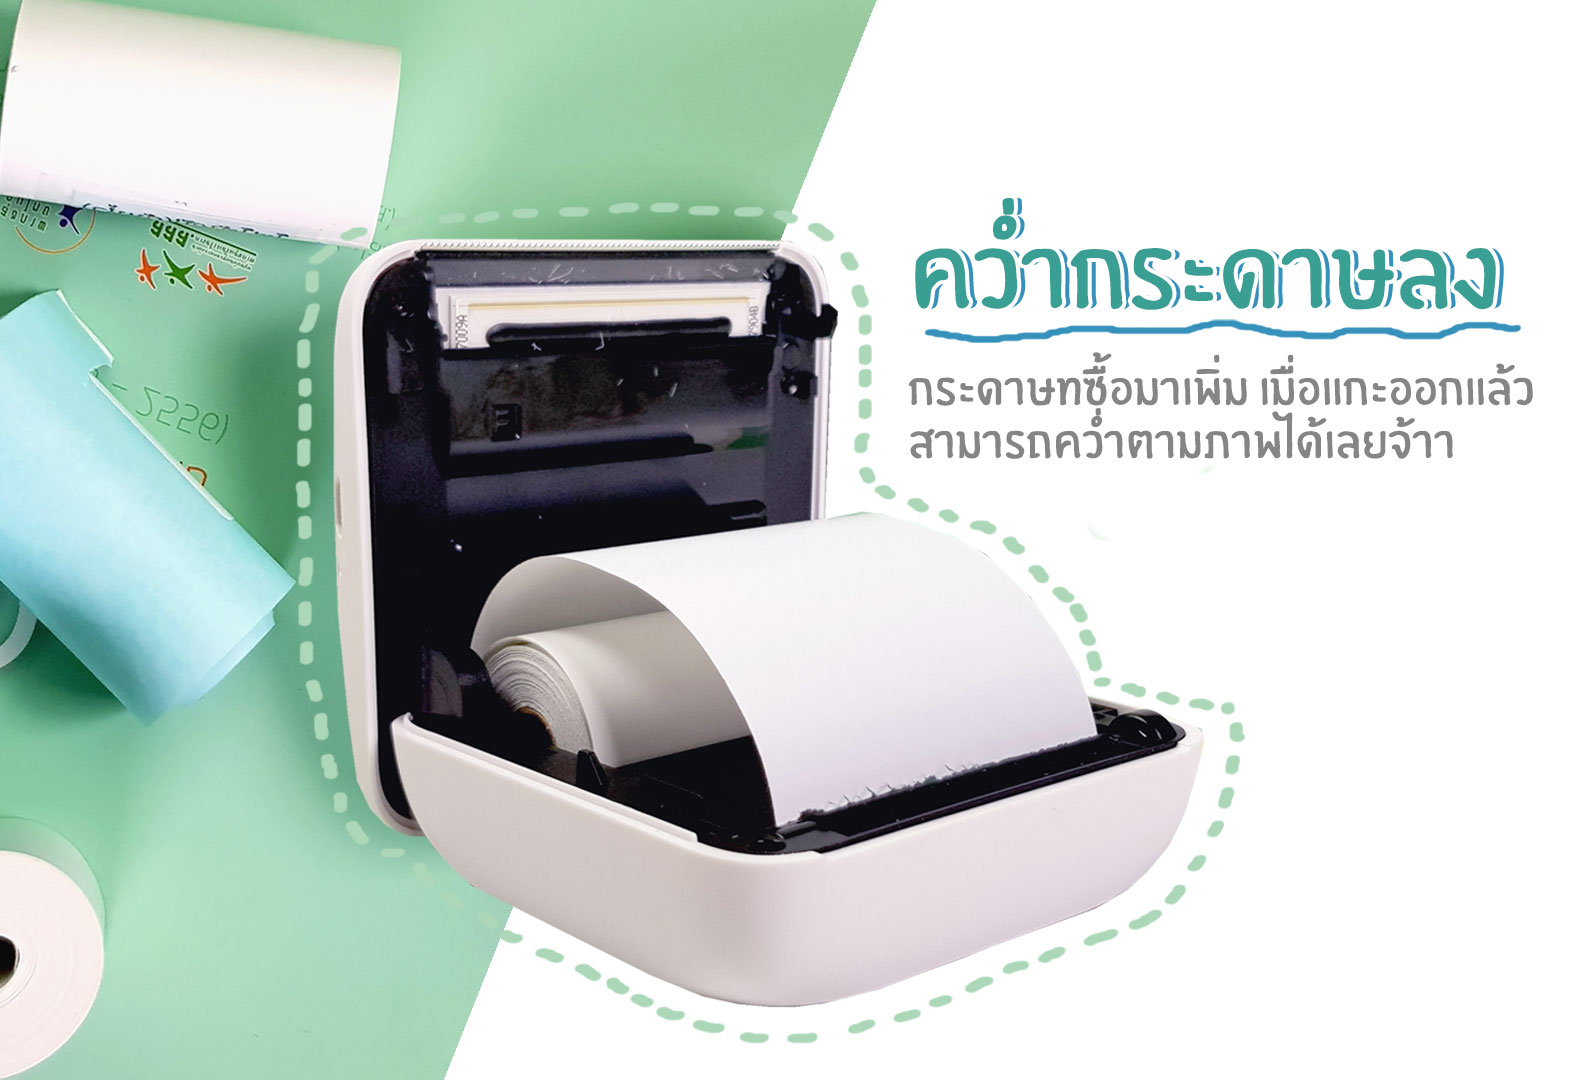 ppr-014-paper